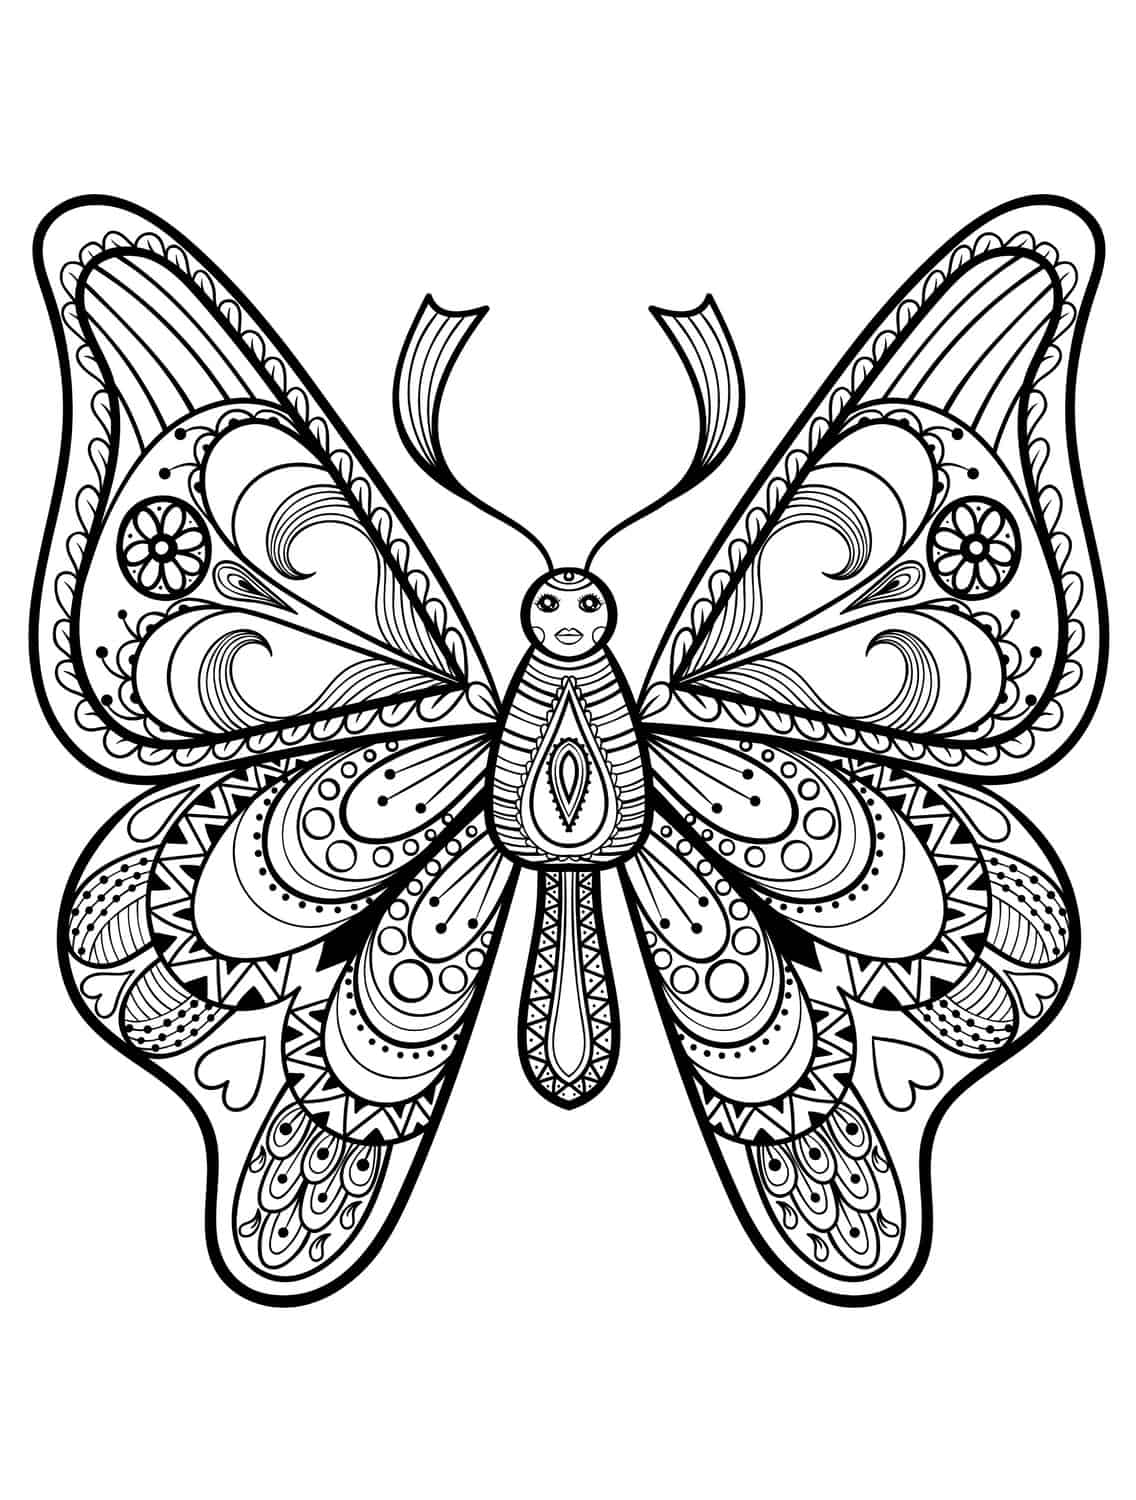 23 free printable insect animal adult coloring pages for Coloring pages of butterflies for adults